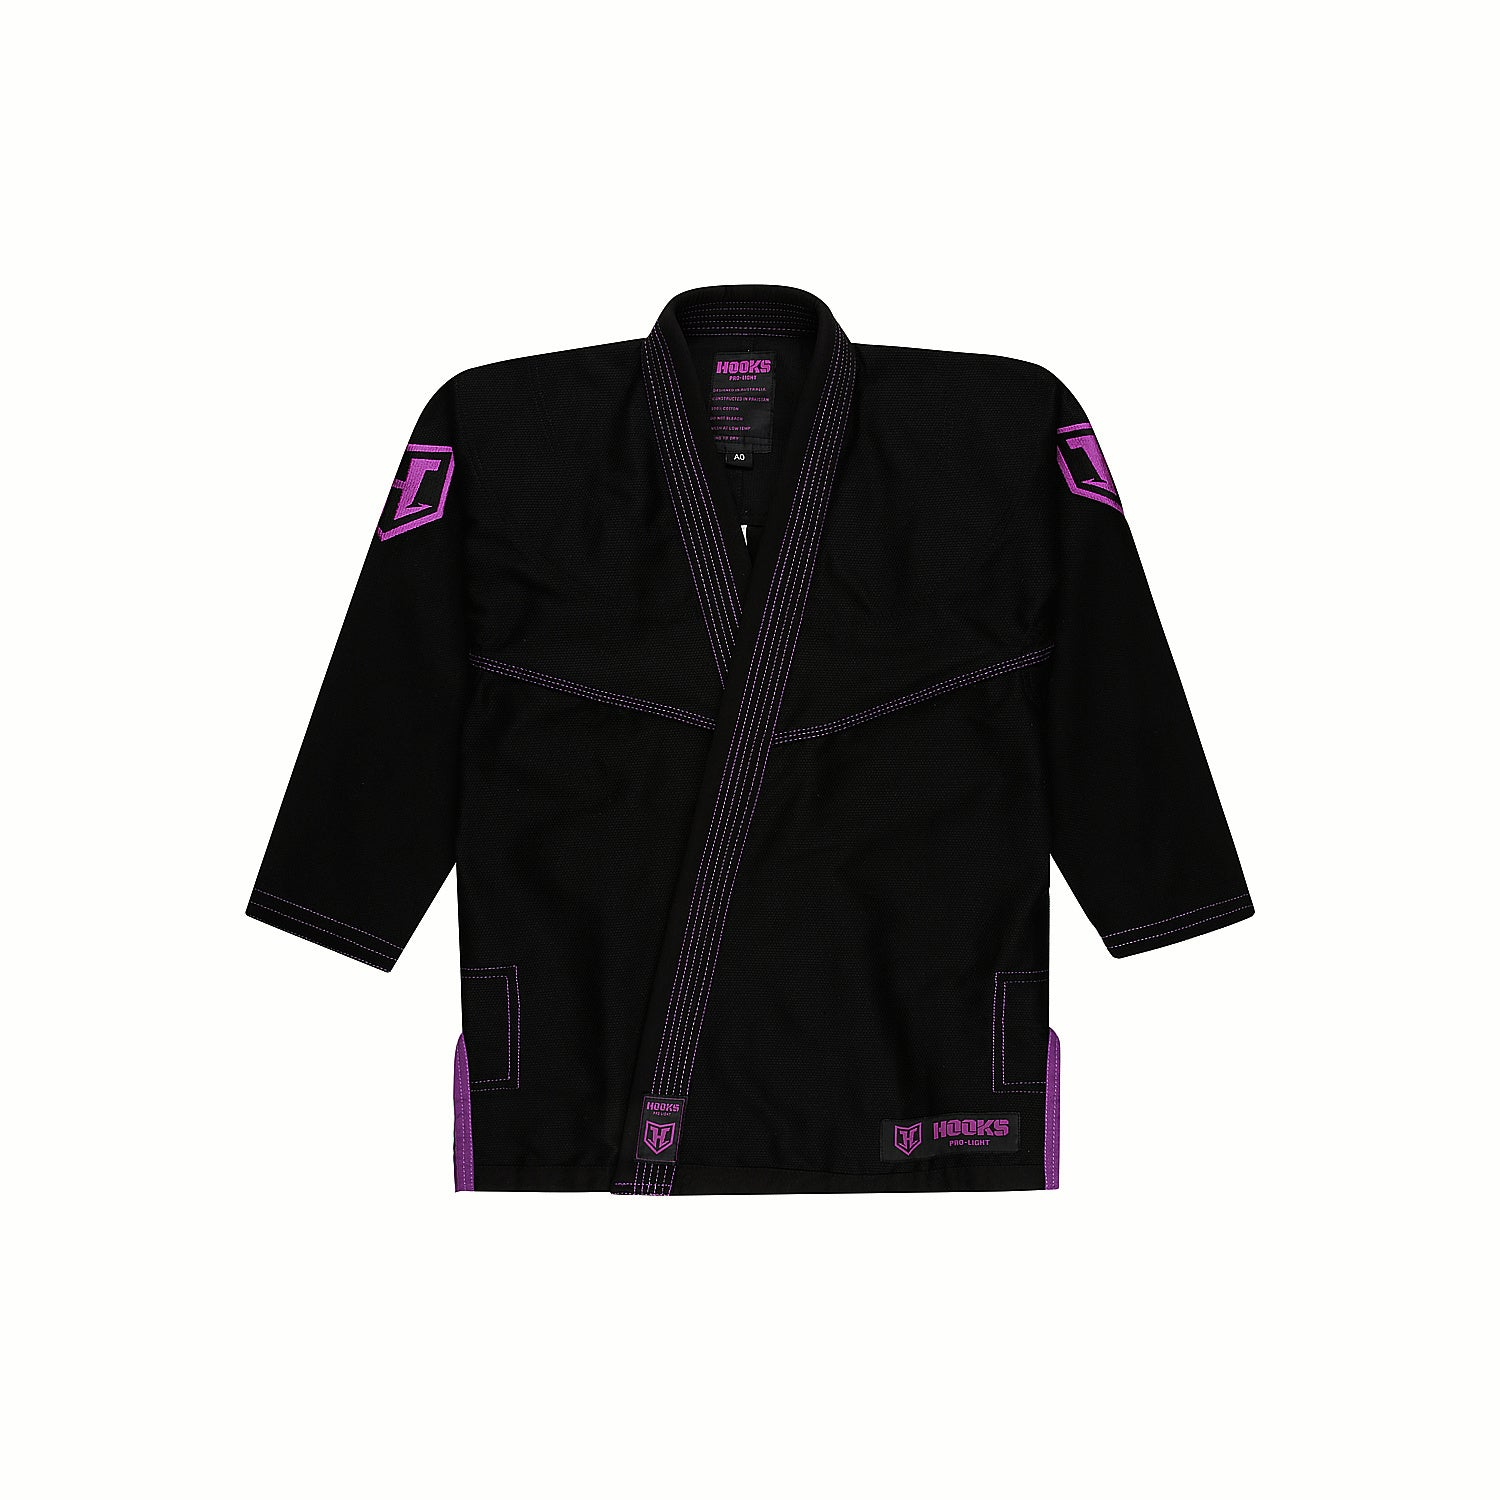 Hooks Pro Light Jiu Jitsu Gi -  Limited Edition Black/Purple